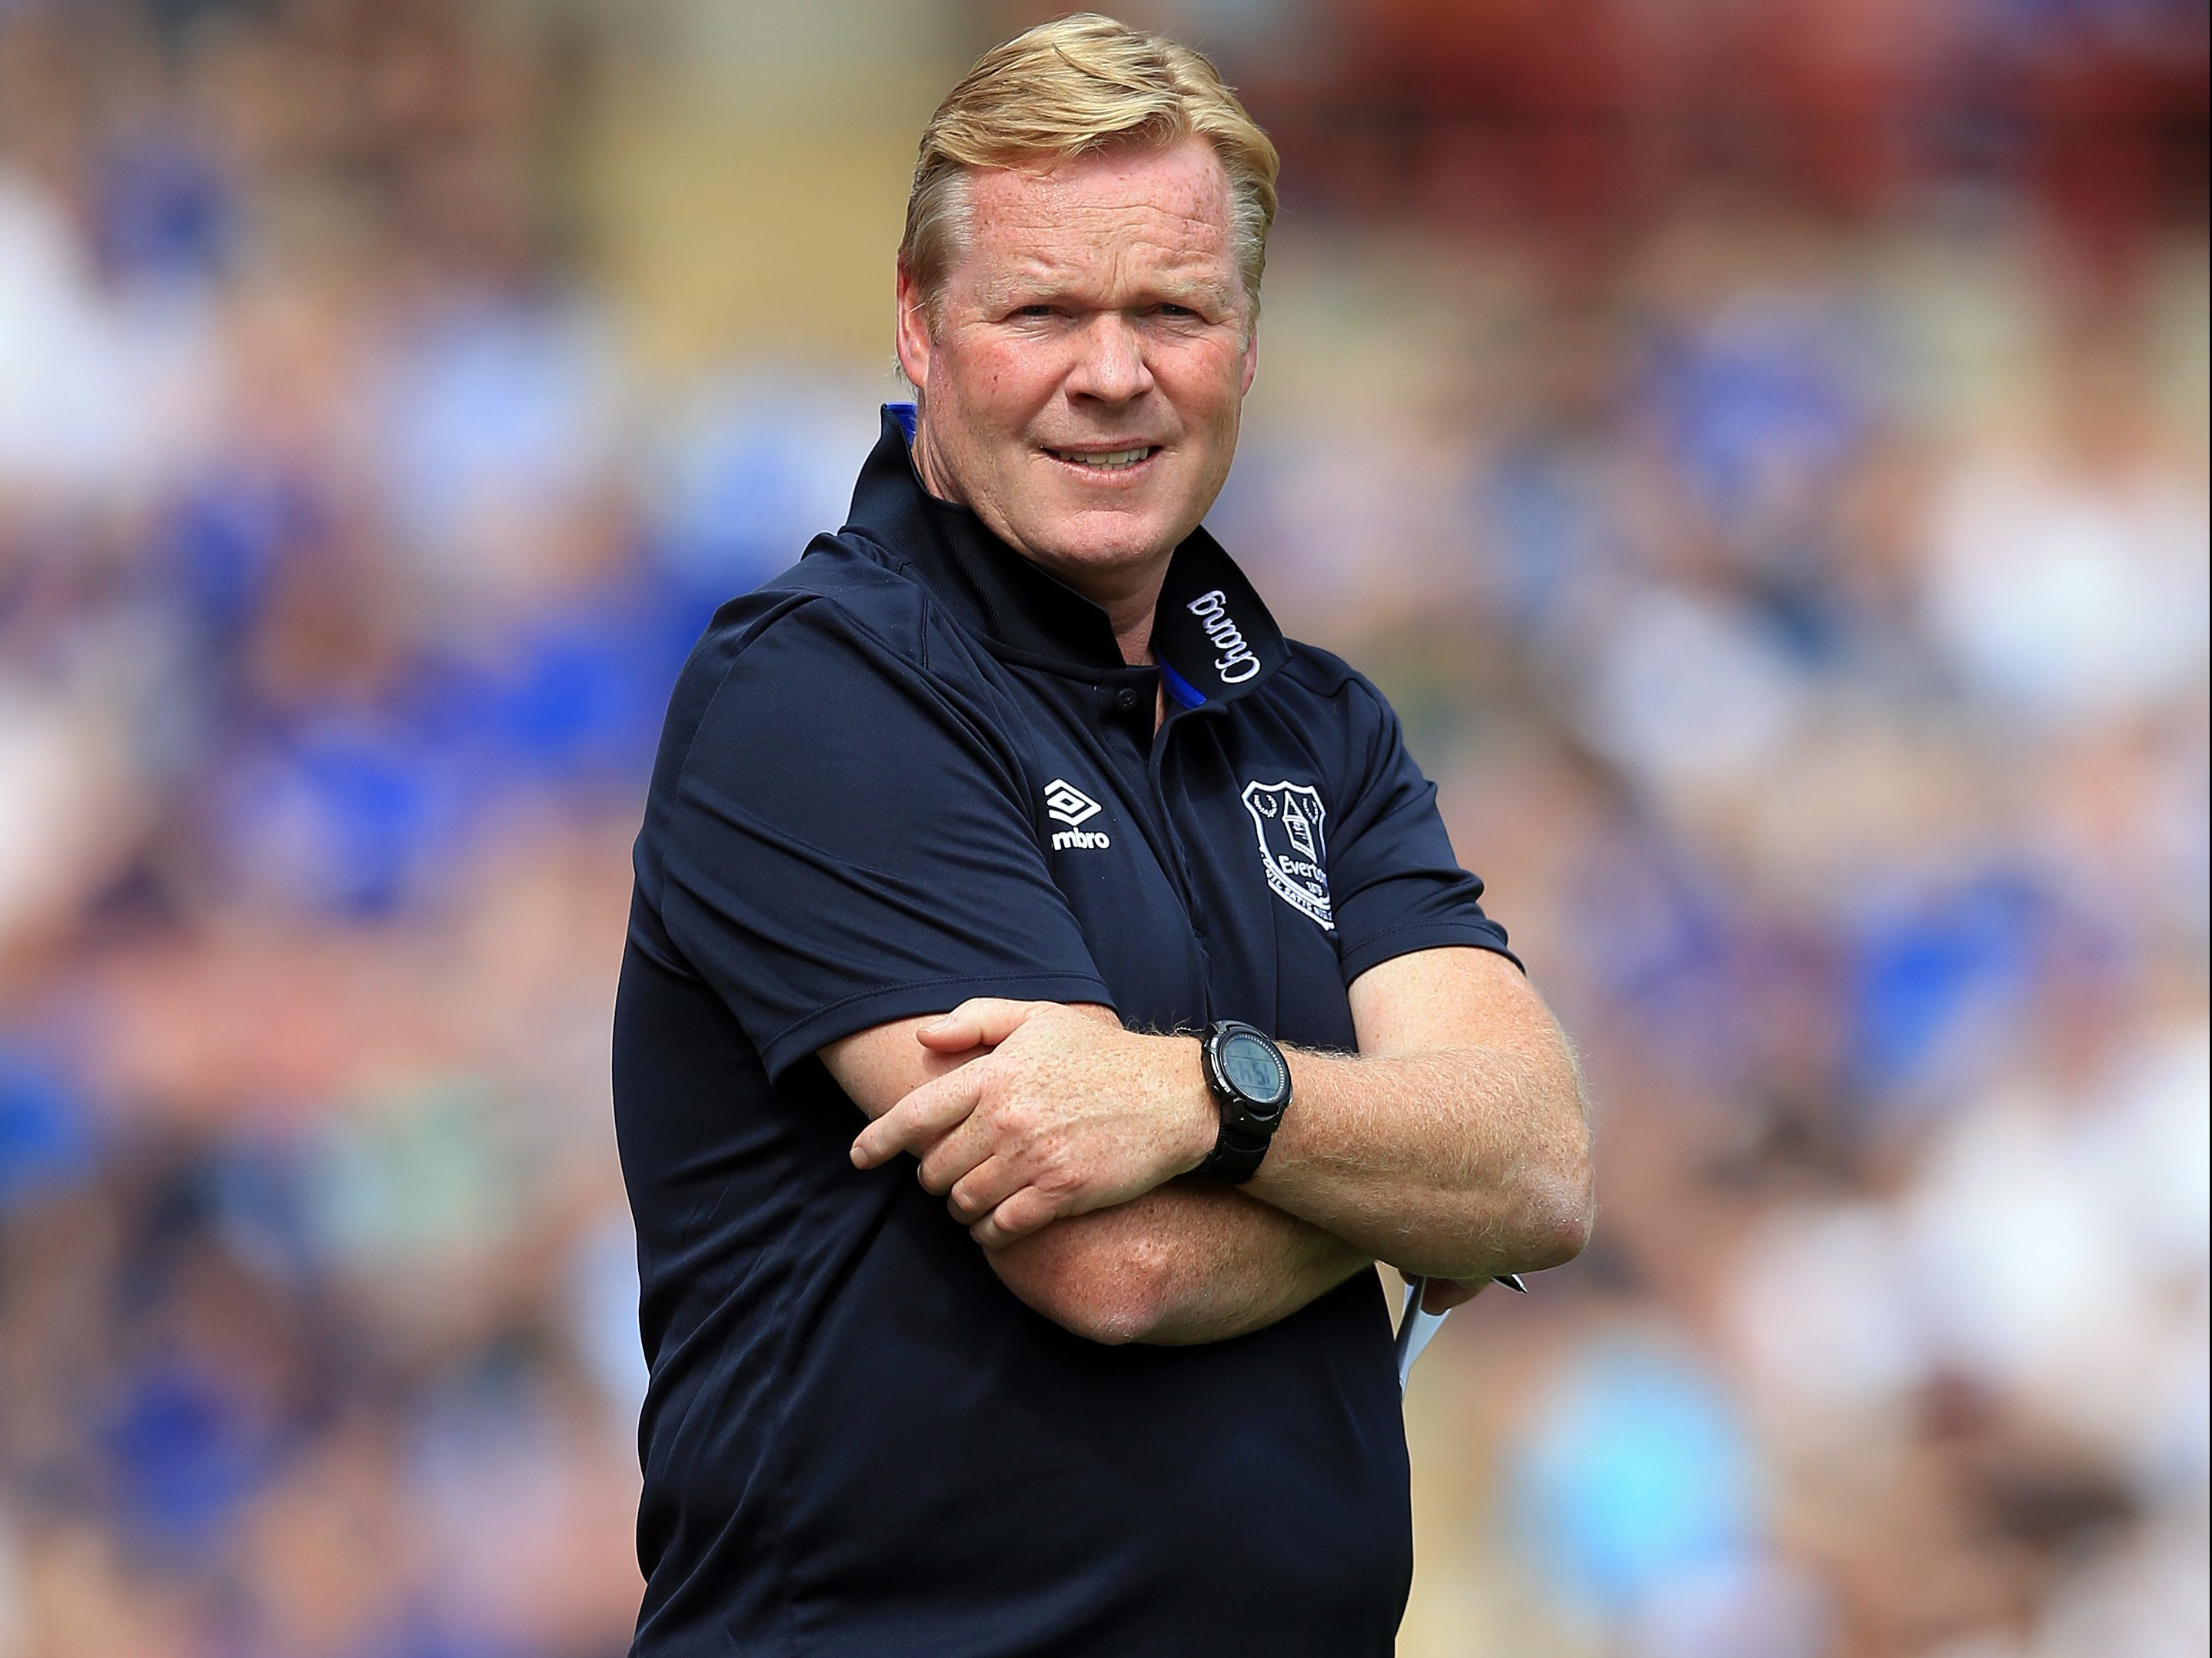 Ronald Koeman manager of Everton (Clint Hughes/Getty Images)